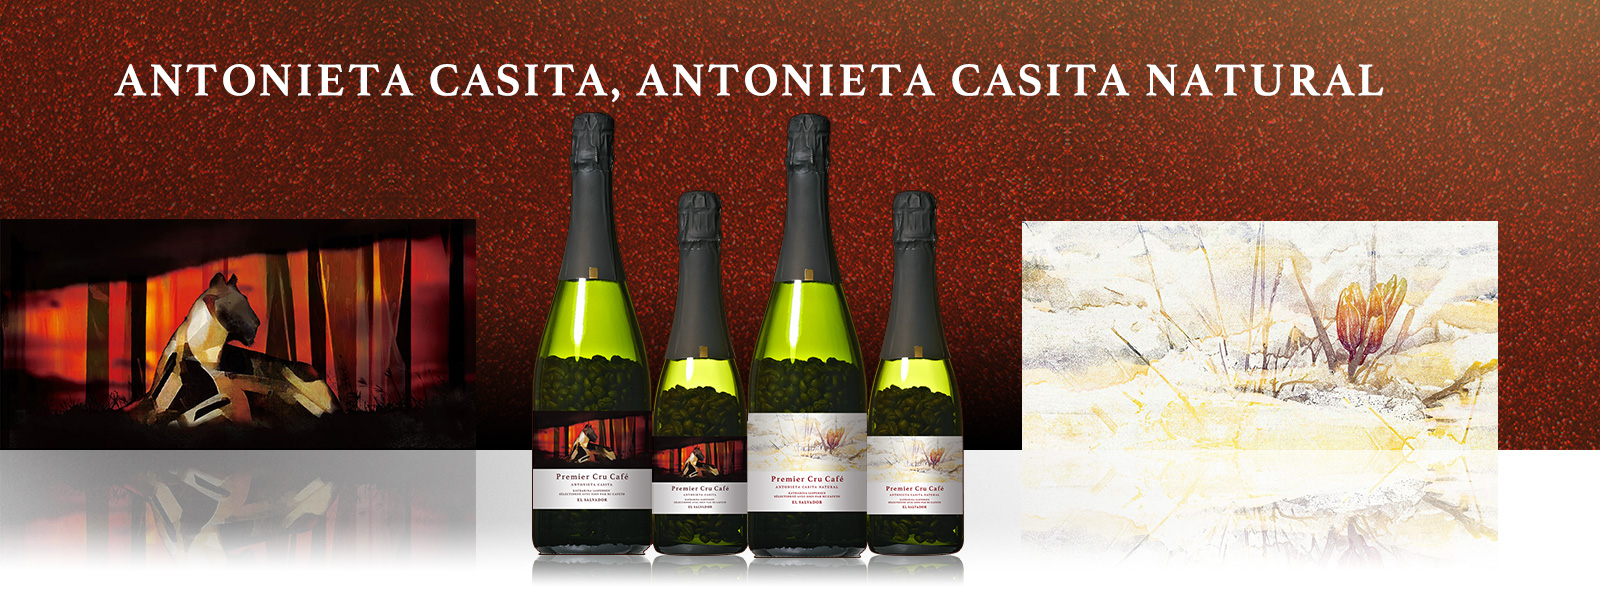 Premier Cru Café ANTONIETA CASITA, ANTONIETA CASITA NATURAL